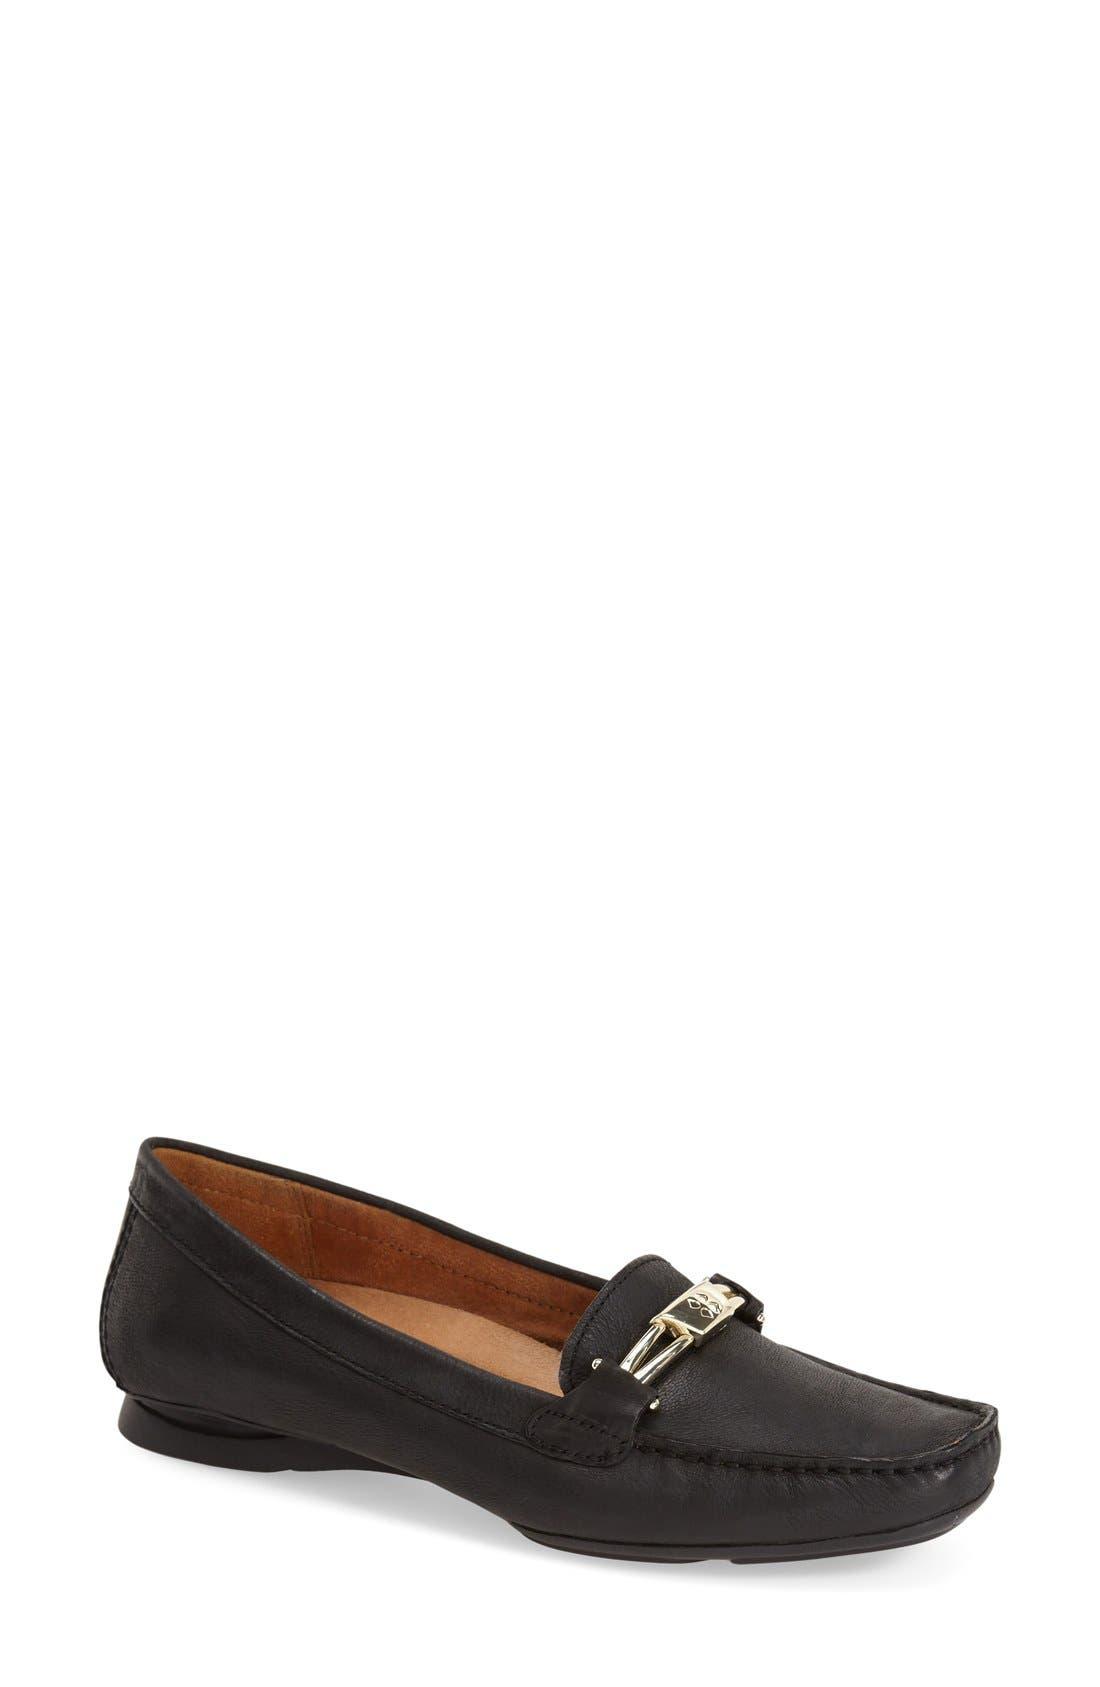 'Saturday' Loafer,                         Main,                         color,